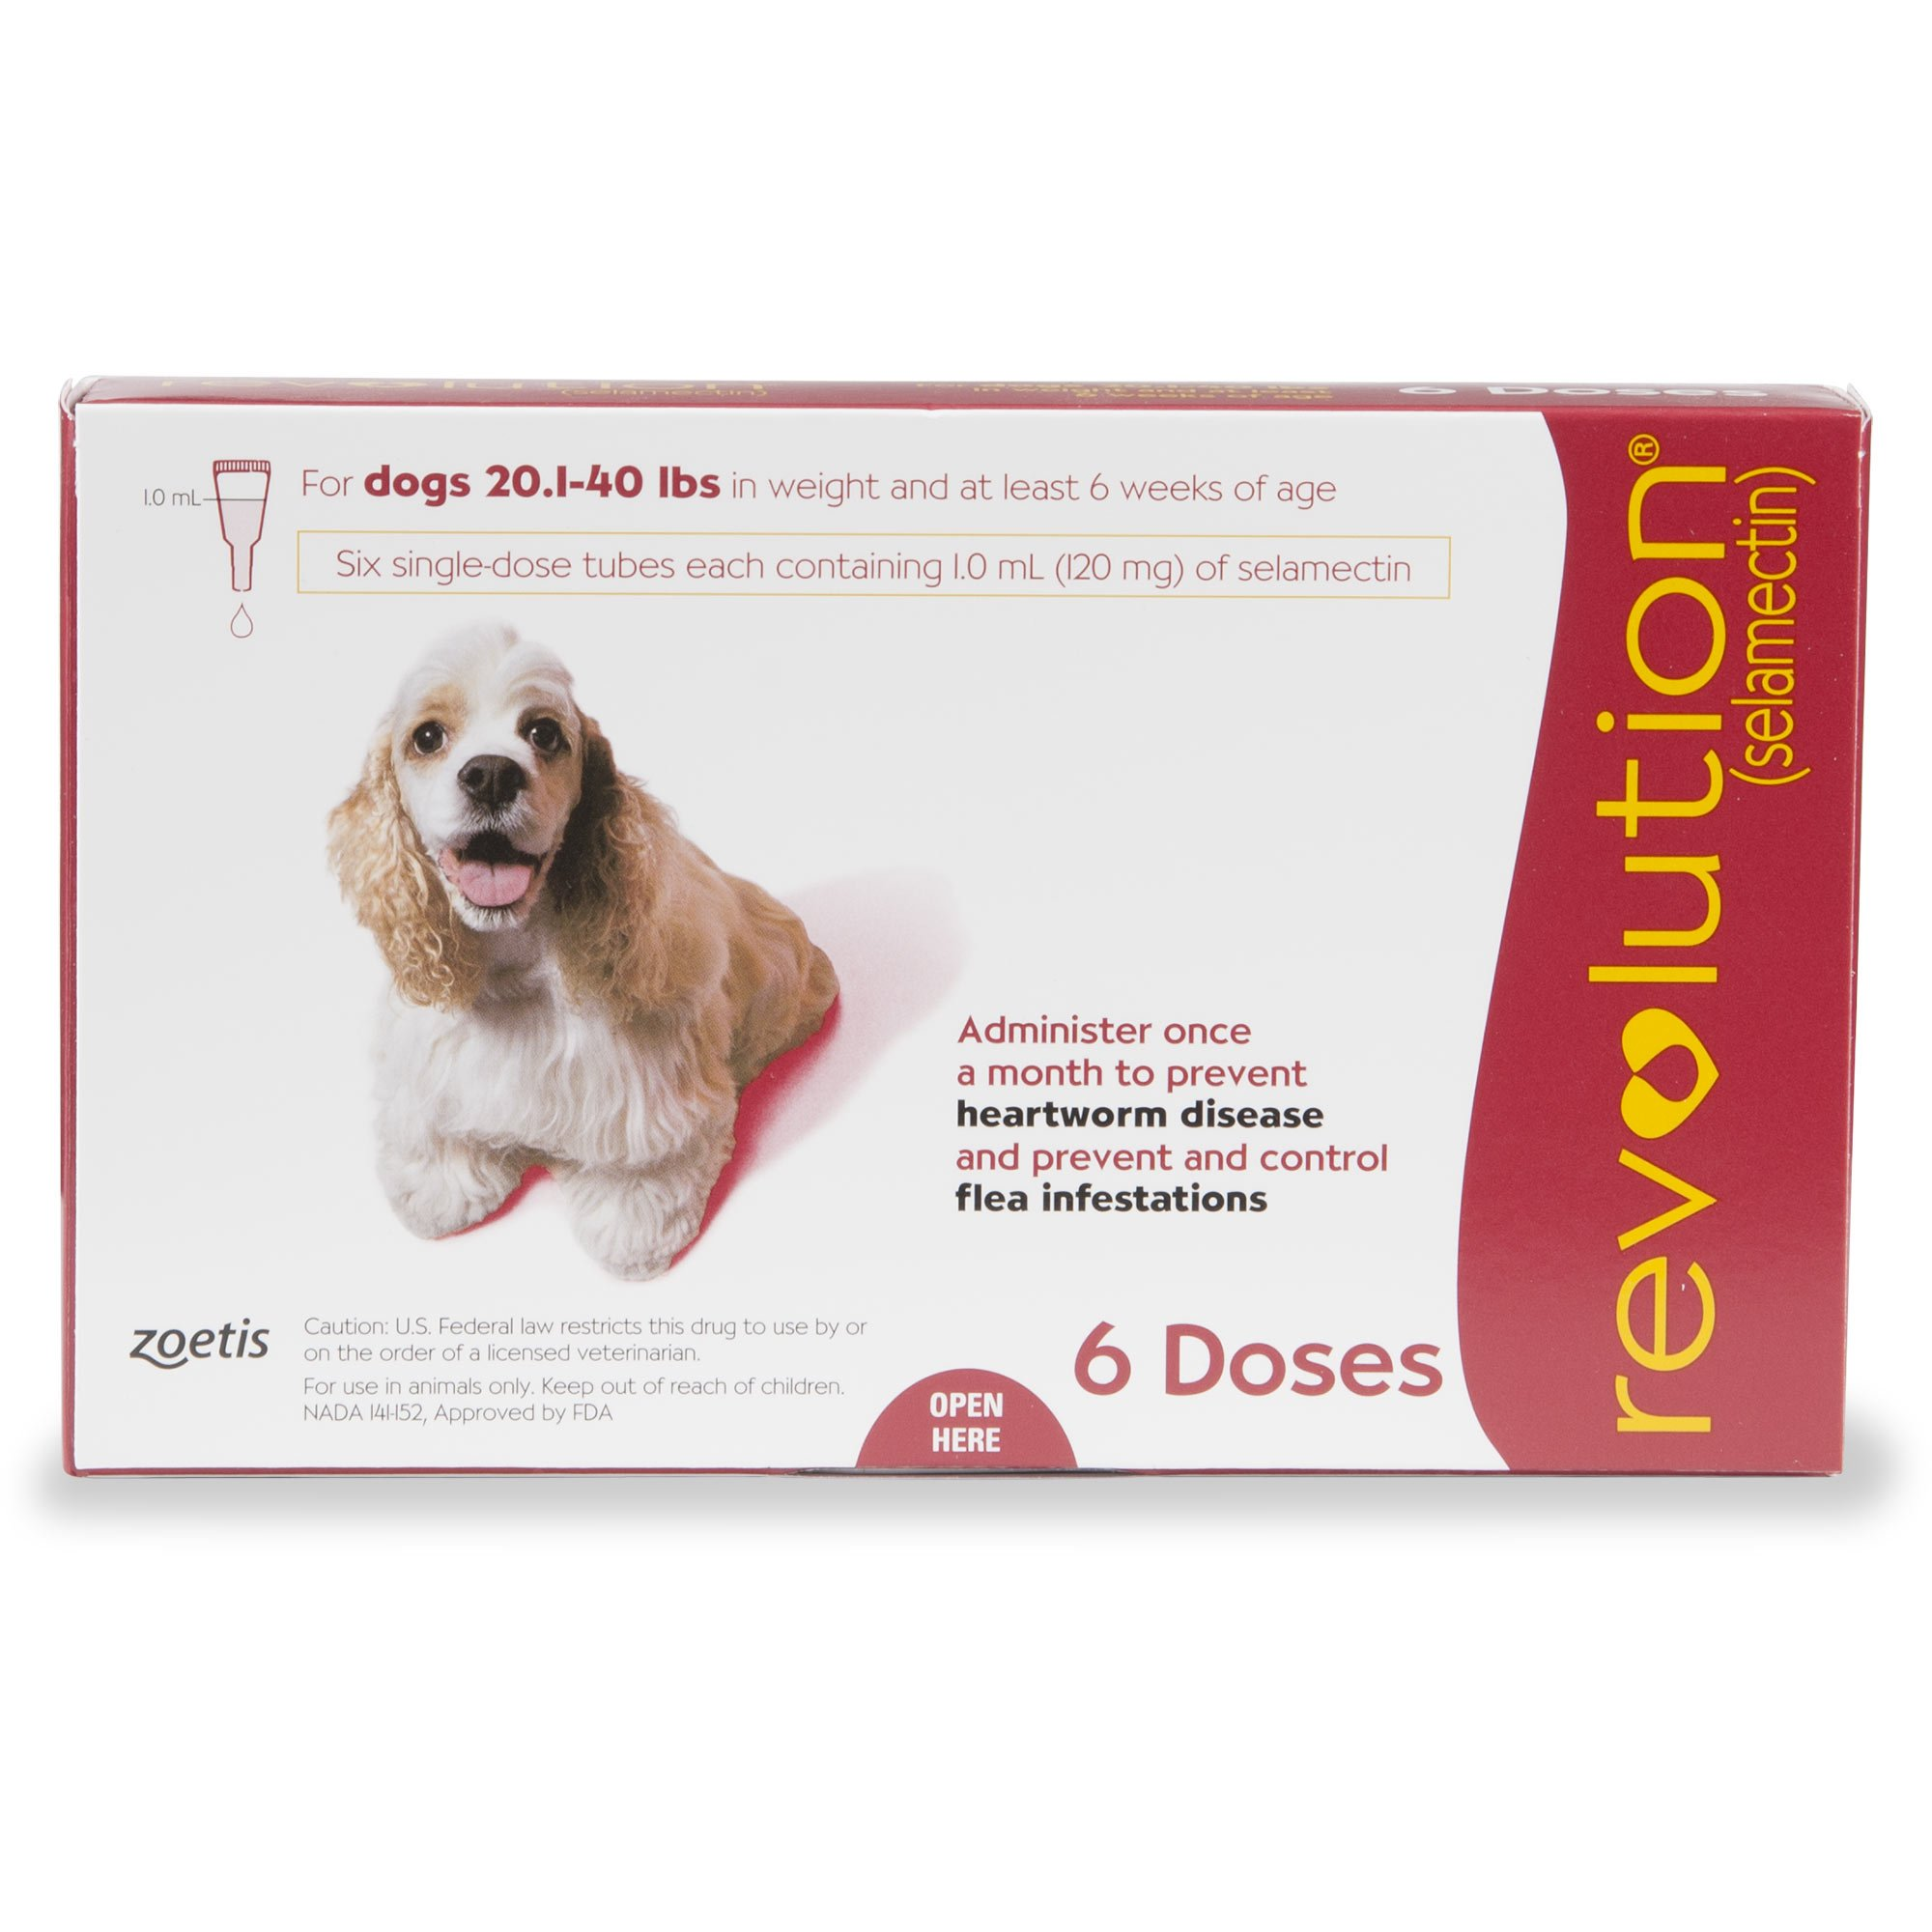 f9f393fbbdb15 Revolution Topical Solution for Dogs 20.1-40 lbs. - Red